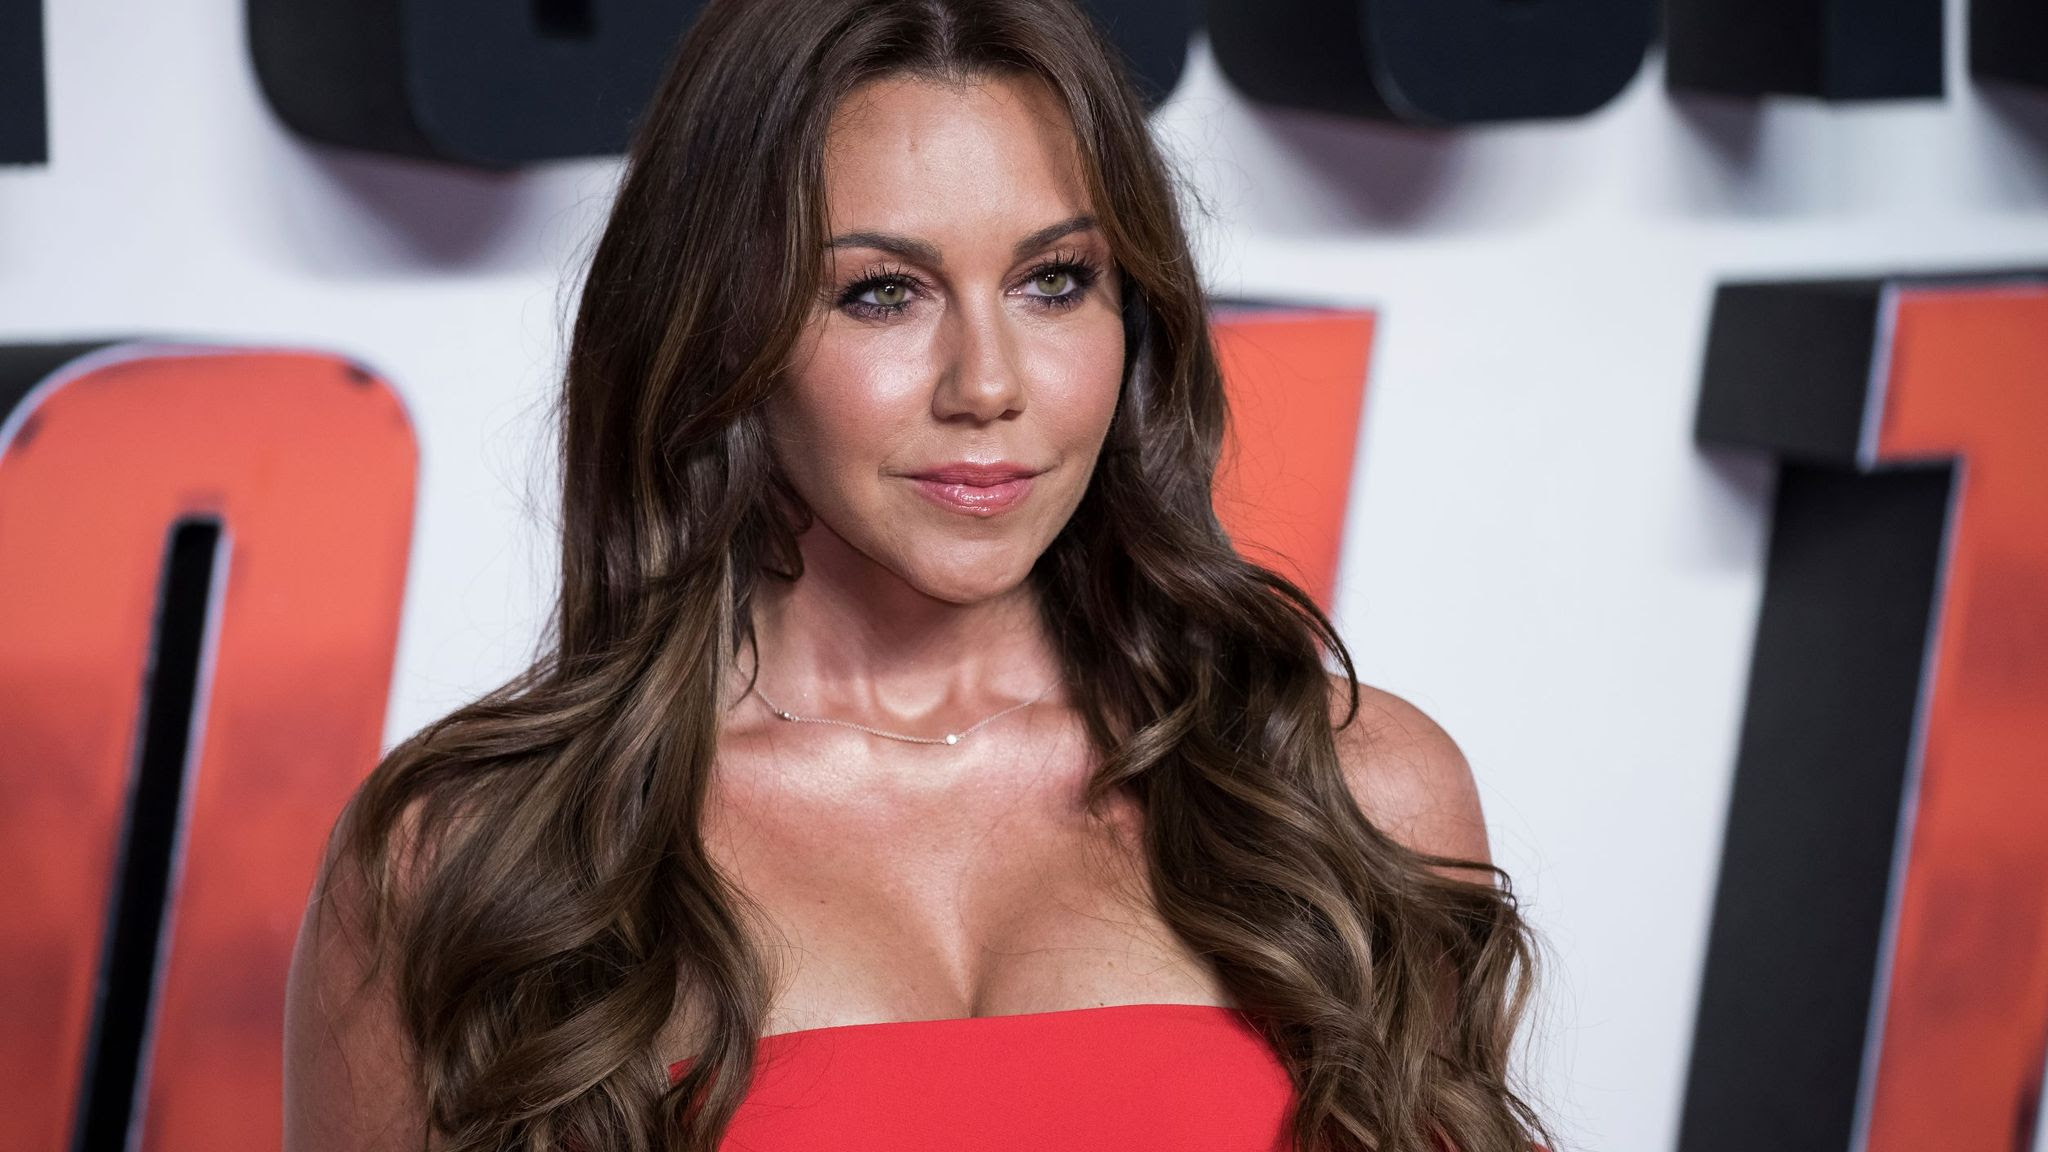 Michelle Heaton shares shocking photo from depths of alcohol addiction to show recovery after 20 weeks of sobriety